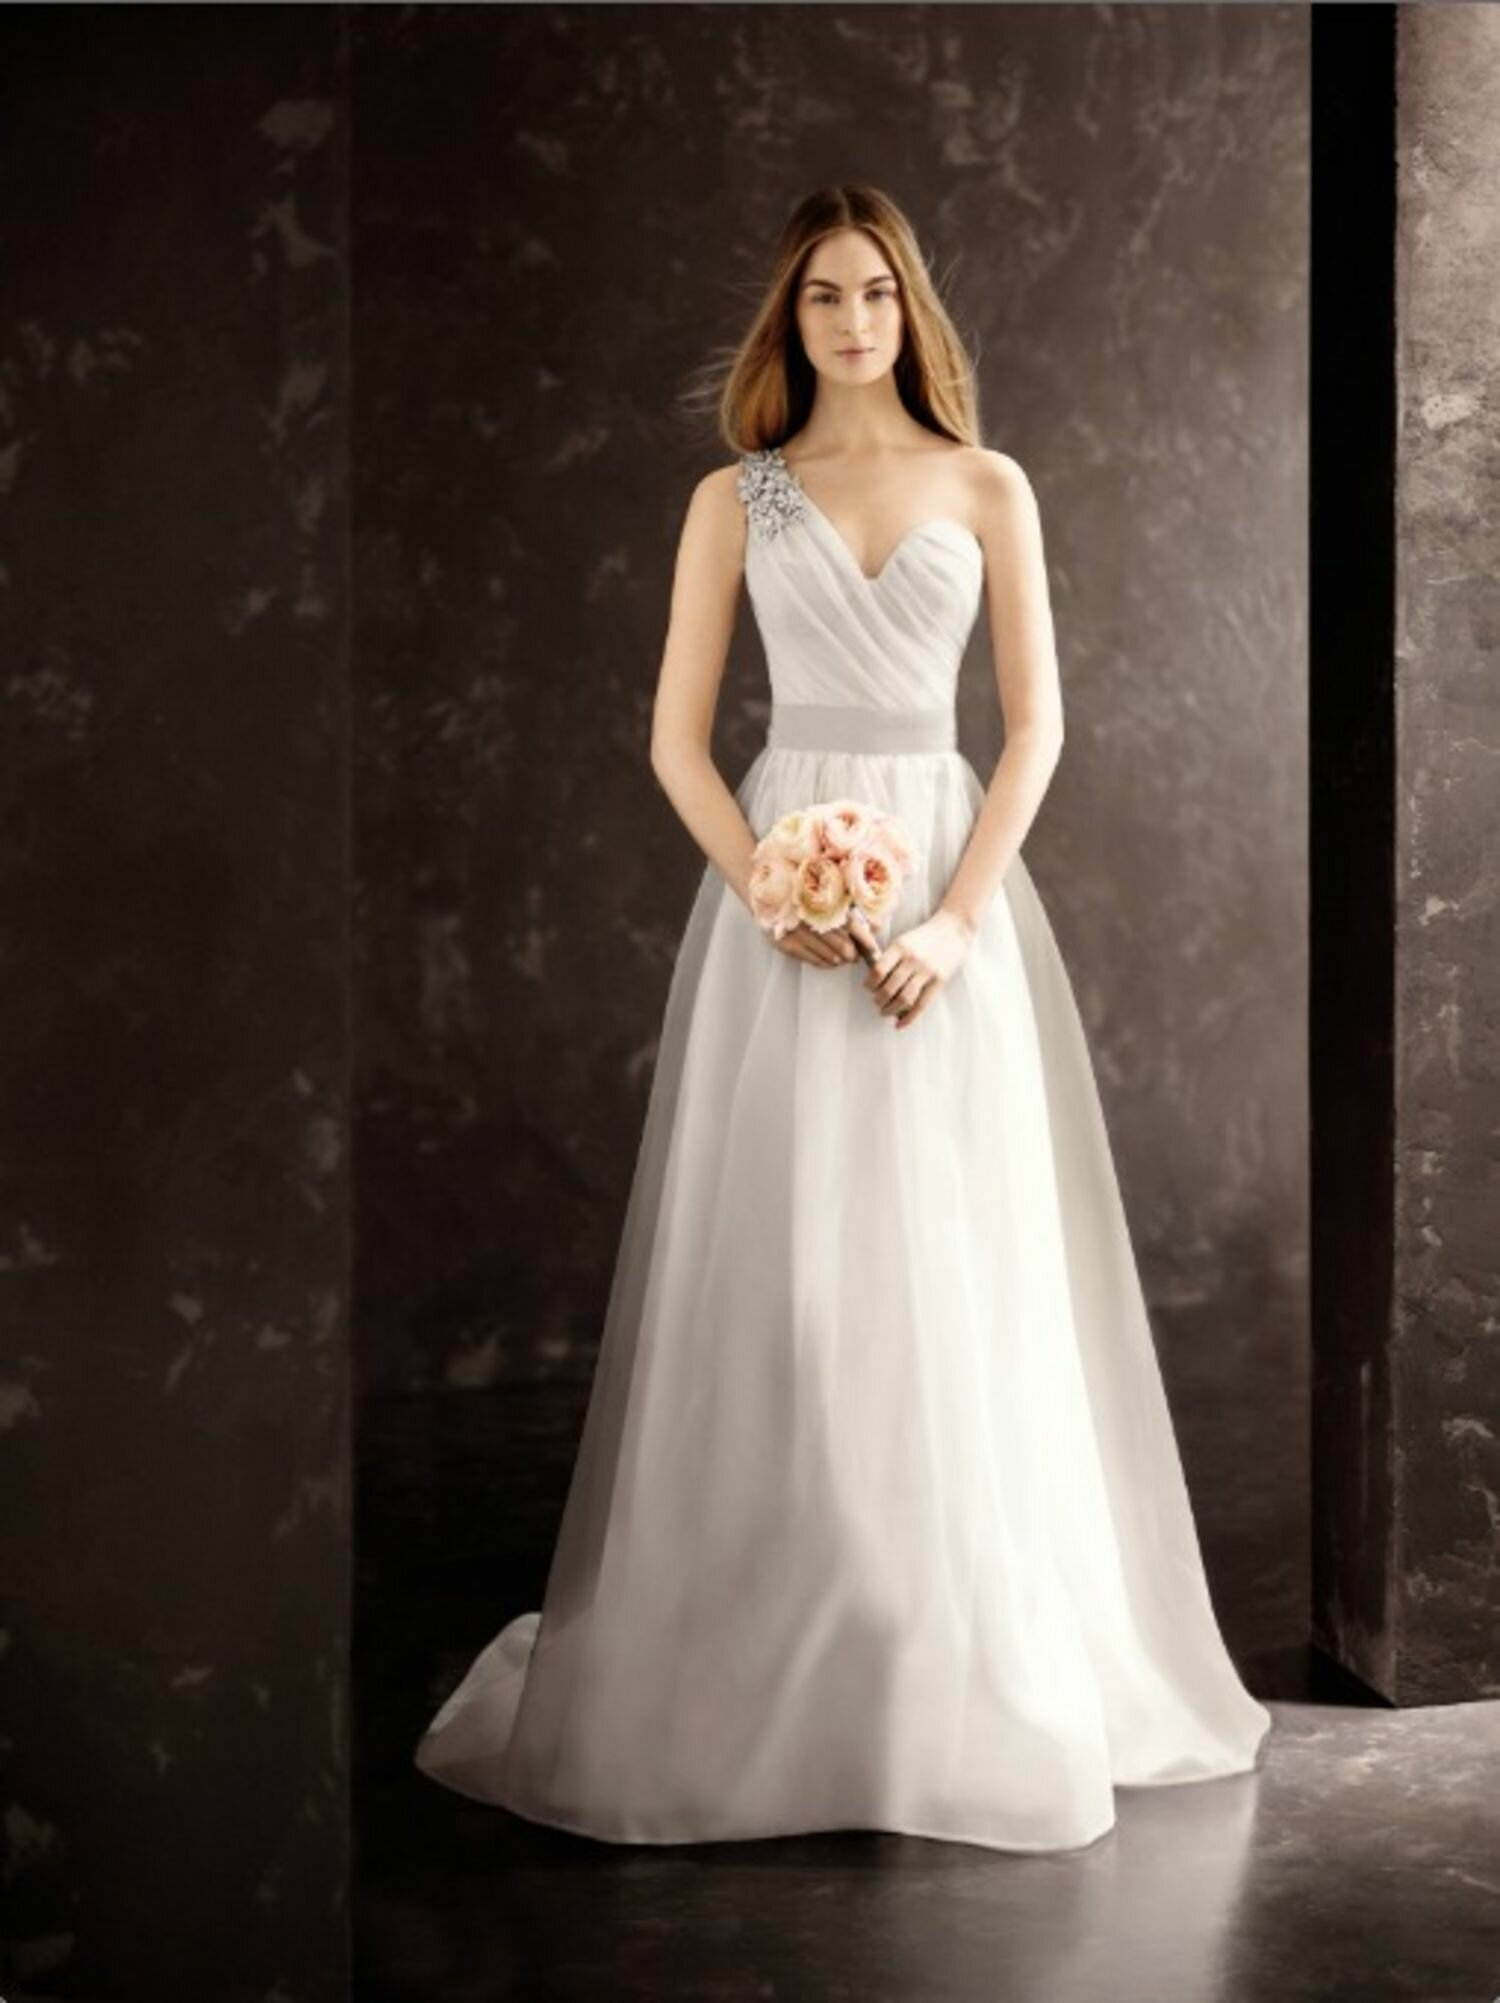 Vera wang wedding dresses davids bridal pictures ideas for Where to buy vera wang wedding dresses